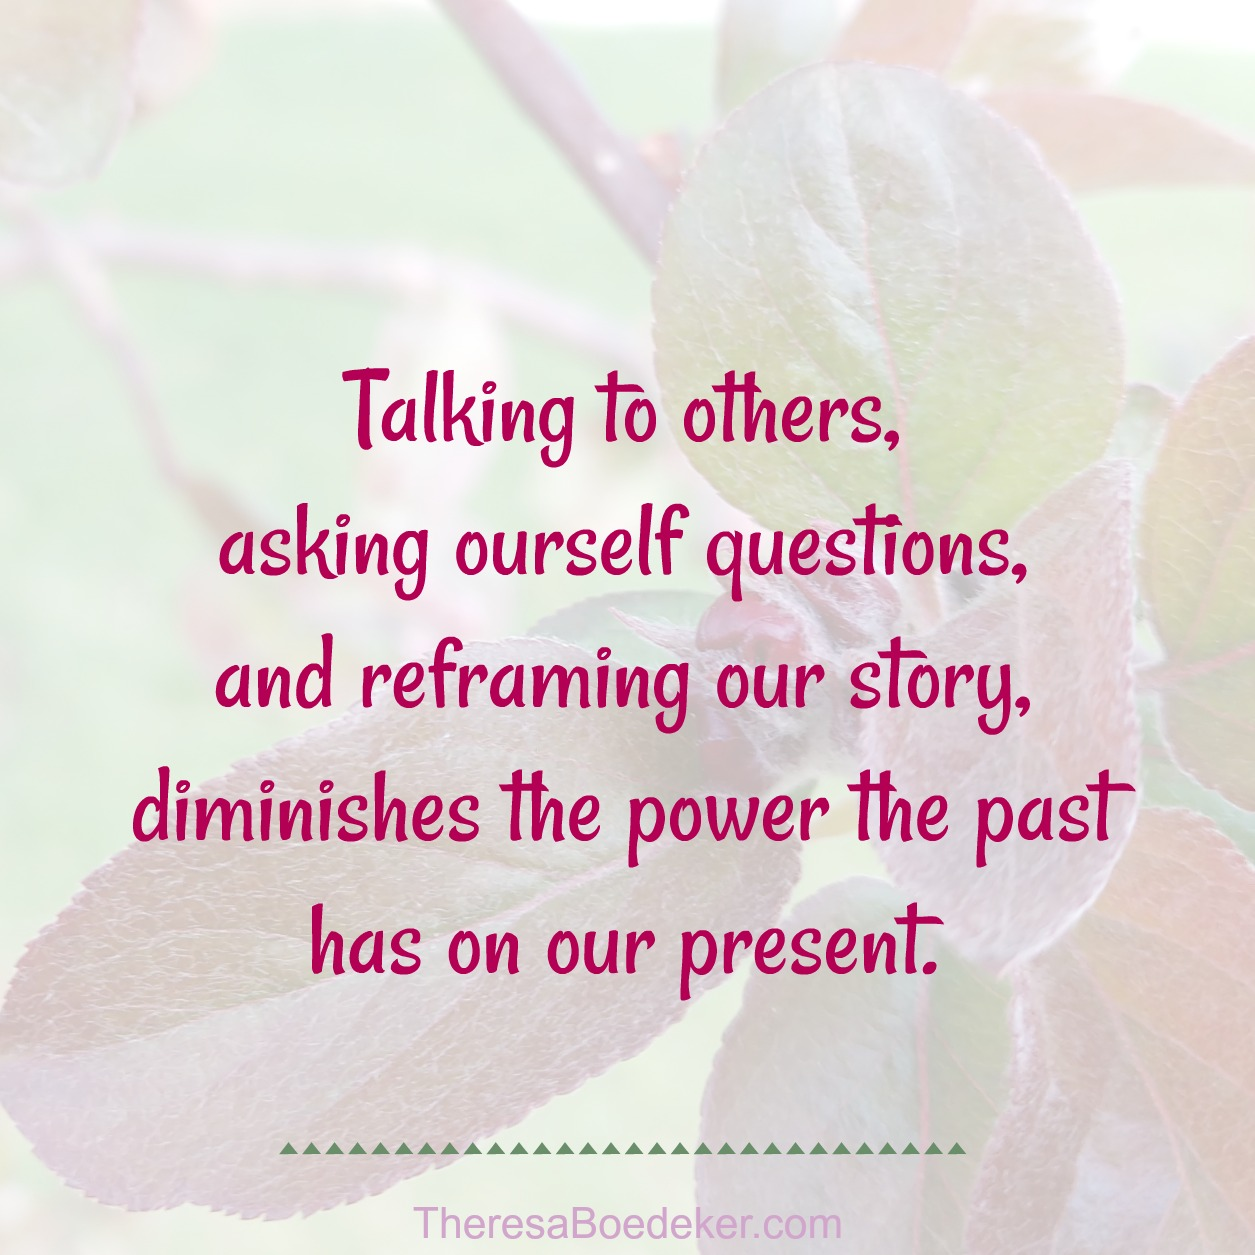 The past influences our present life until we start talking about the past, asking questions, and reframing the story to include new truths.